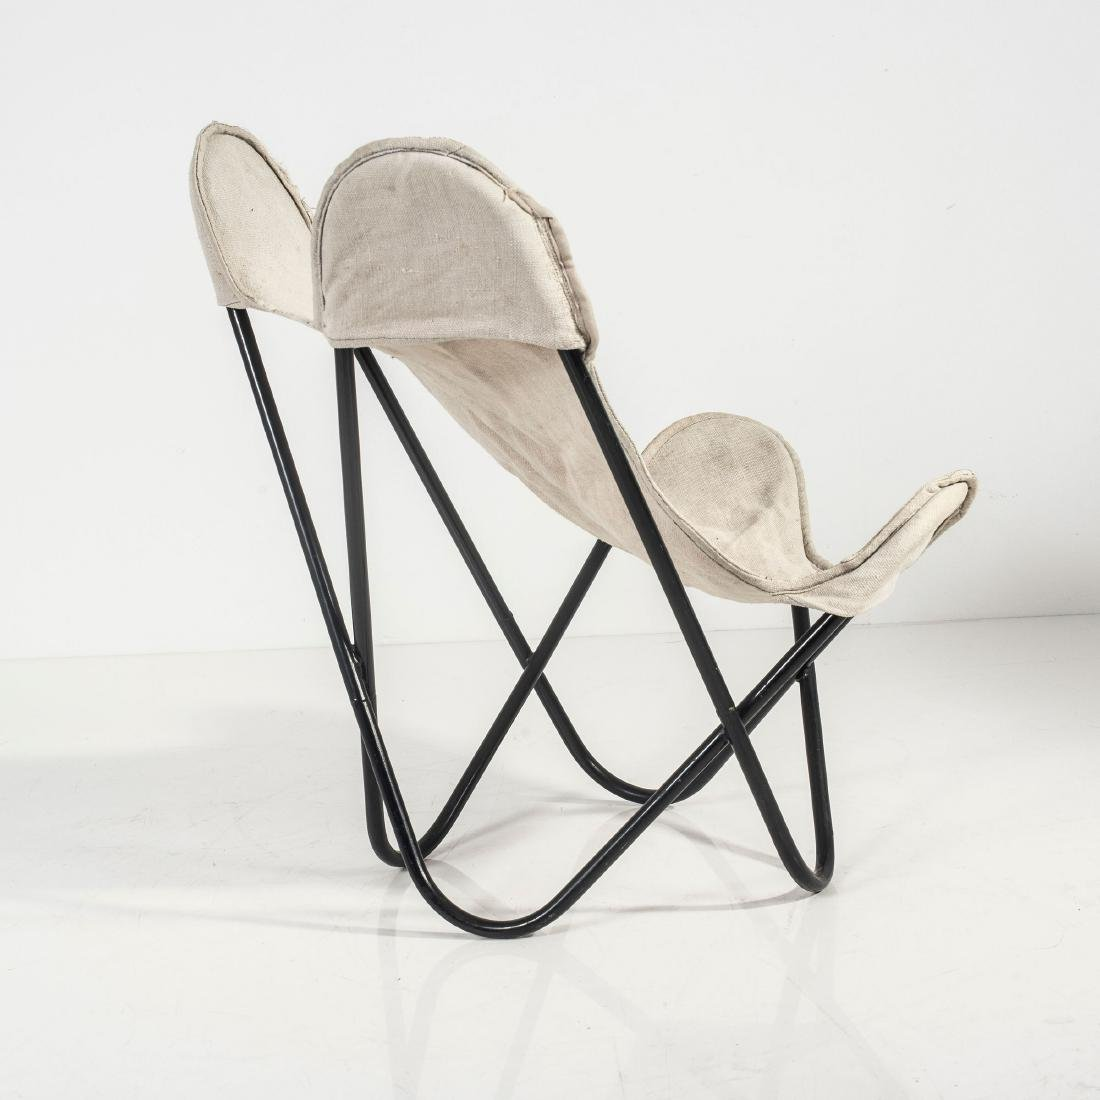 'Bat' - 'Butterfly' child's chair, 1938 - 2